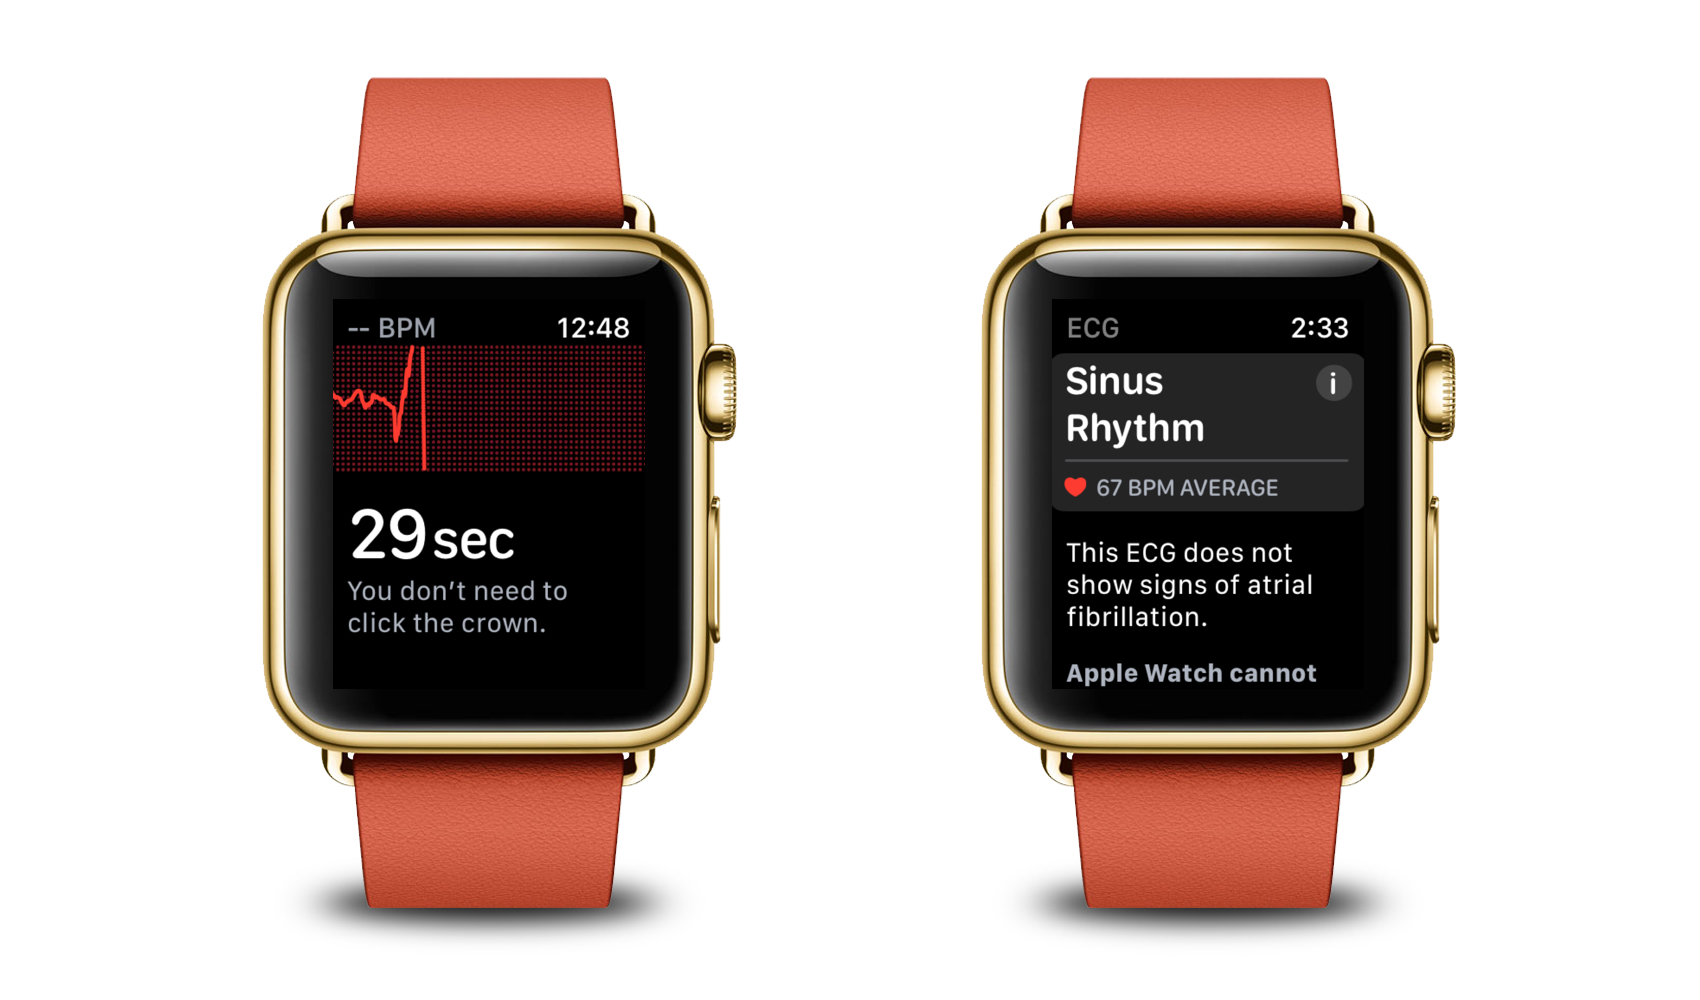 Just One Week After UK Launch, Apple Watch Series 4 ECG Functionality Saves a Life